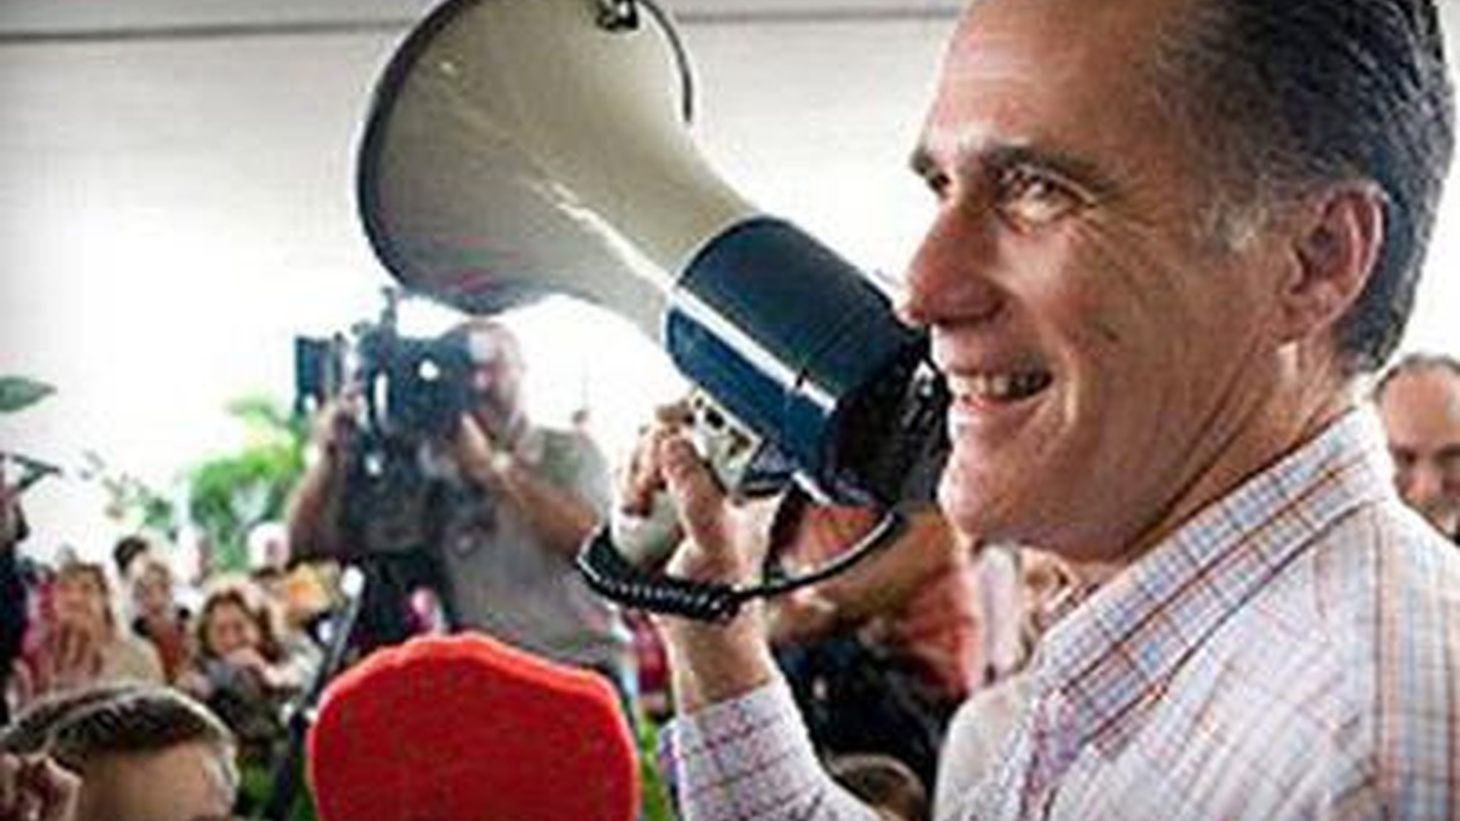 """Mitt Romney made his presidential candidacy """"official"""" today. We hear what he said, why he said it in New Hampshire, and look at the sprawling Republican field."""